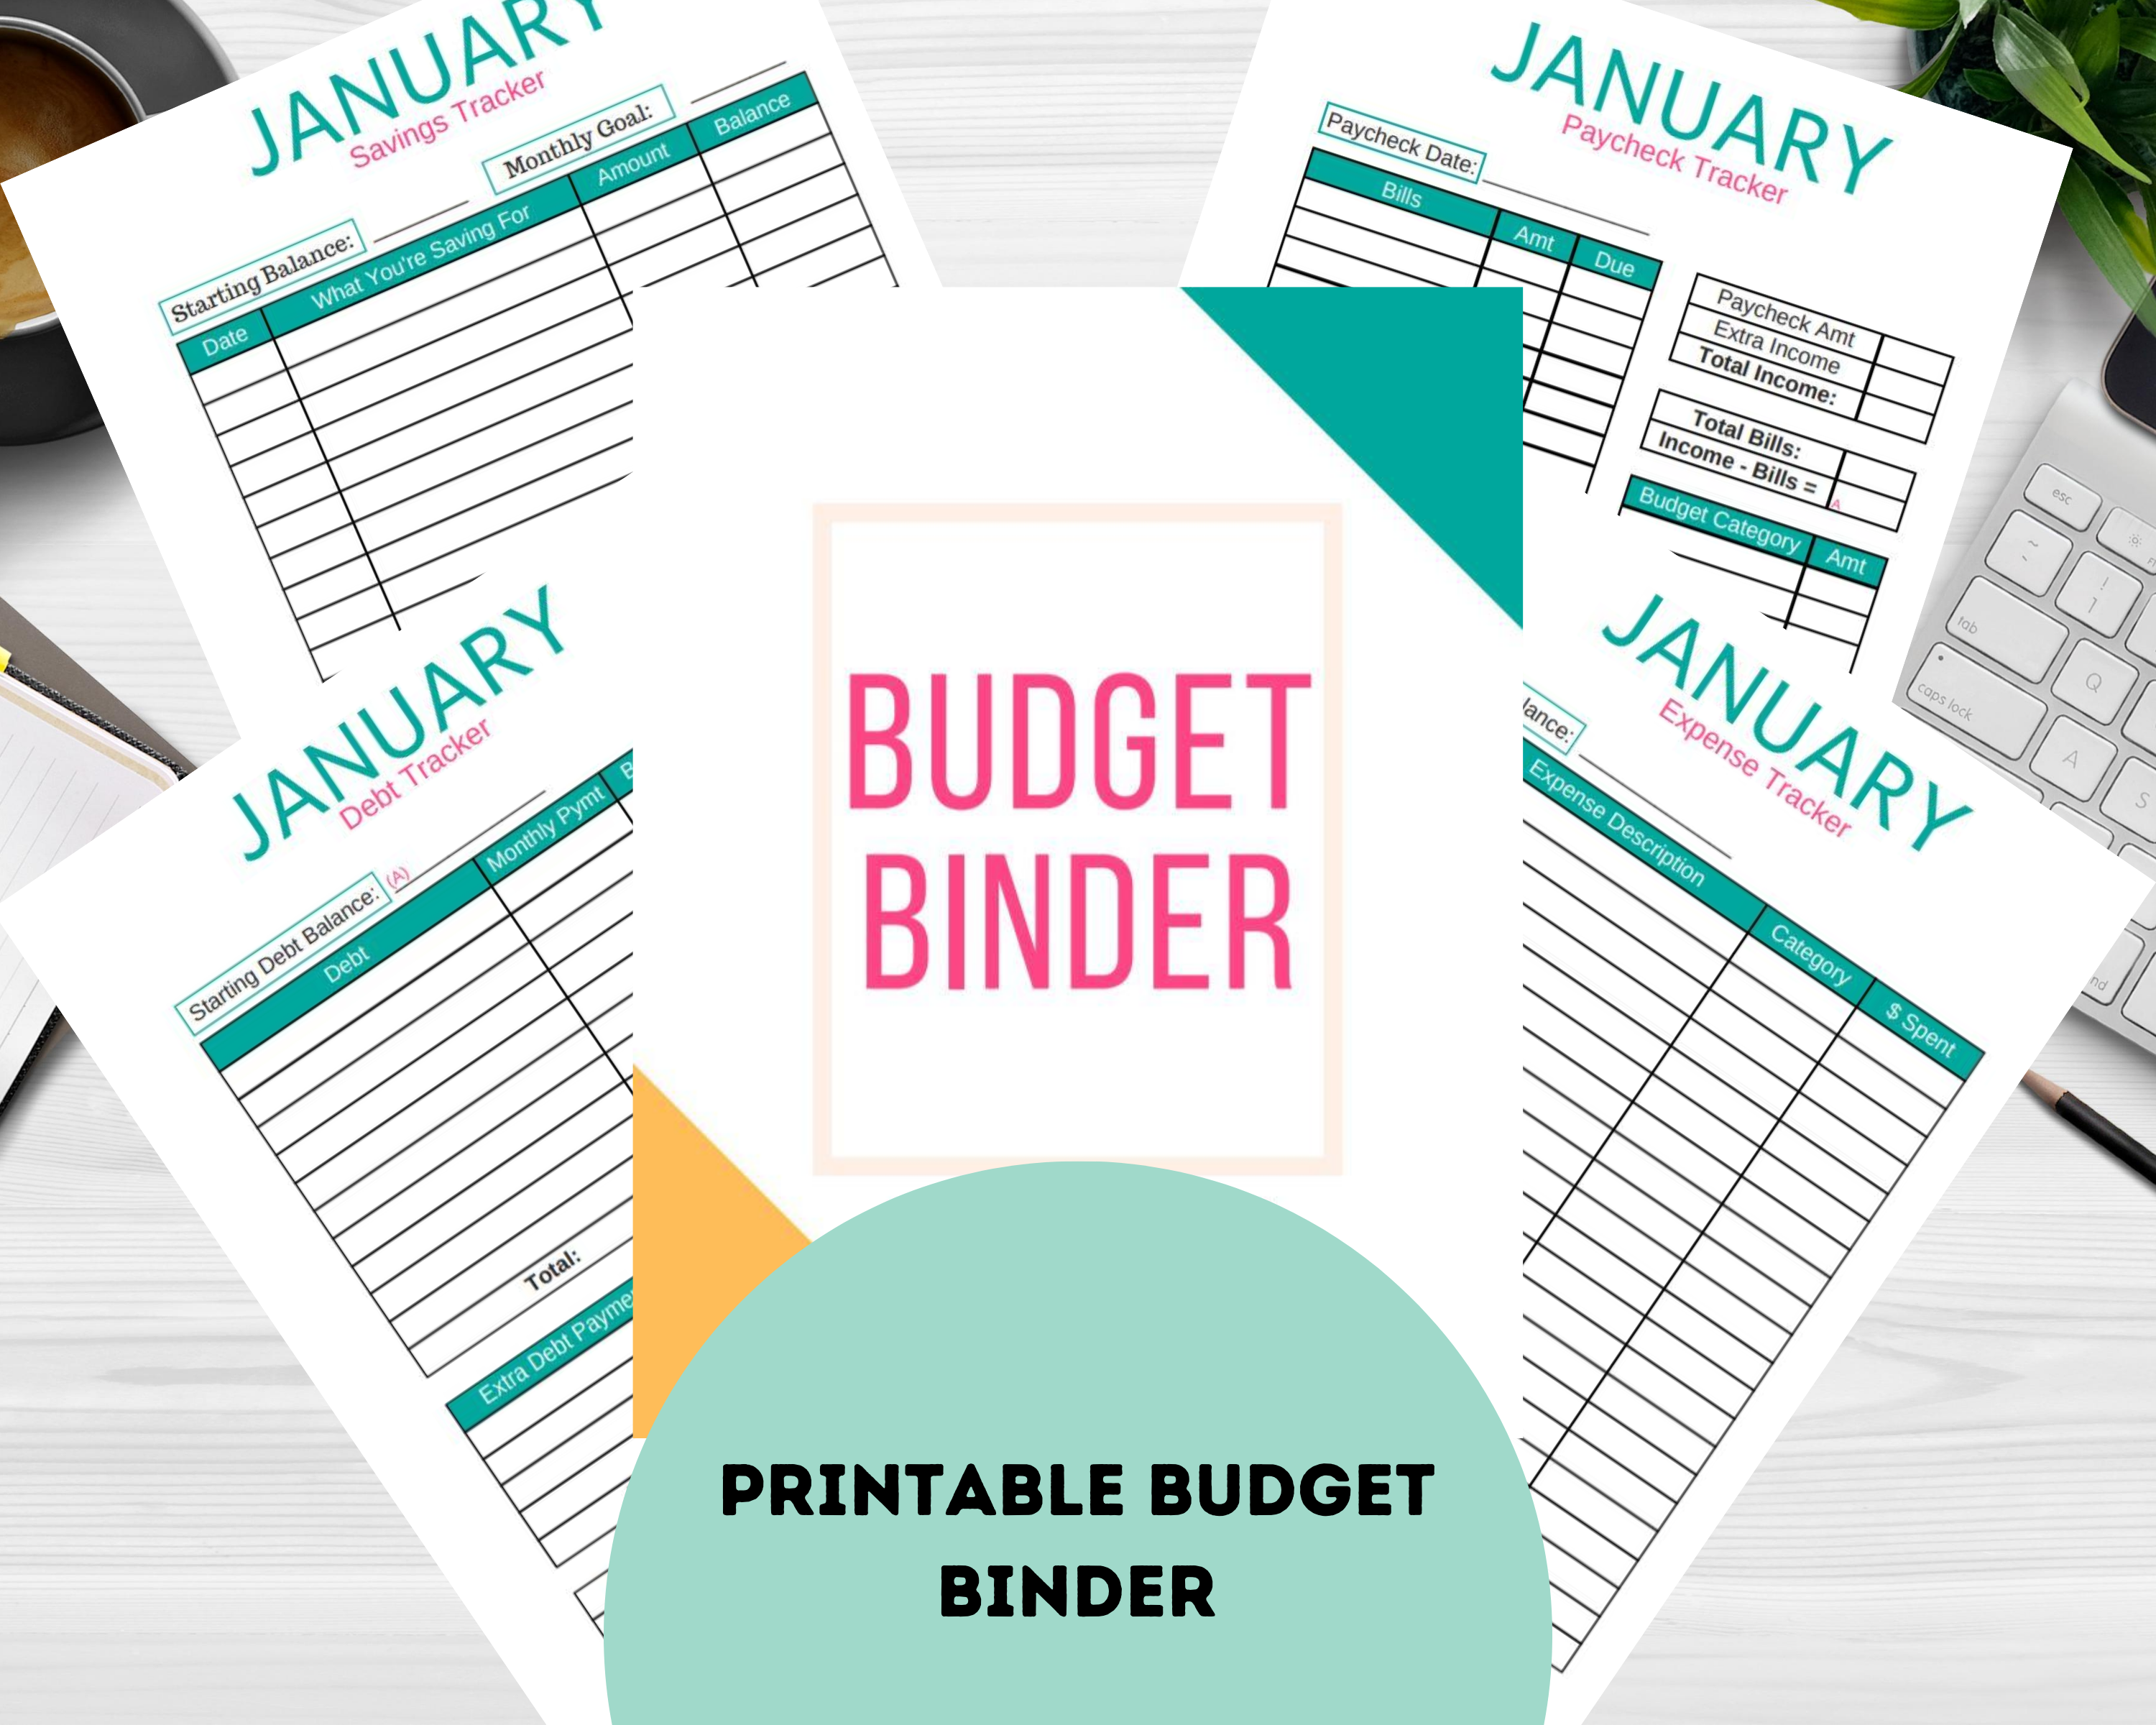 Get The Full Budget Binder Here